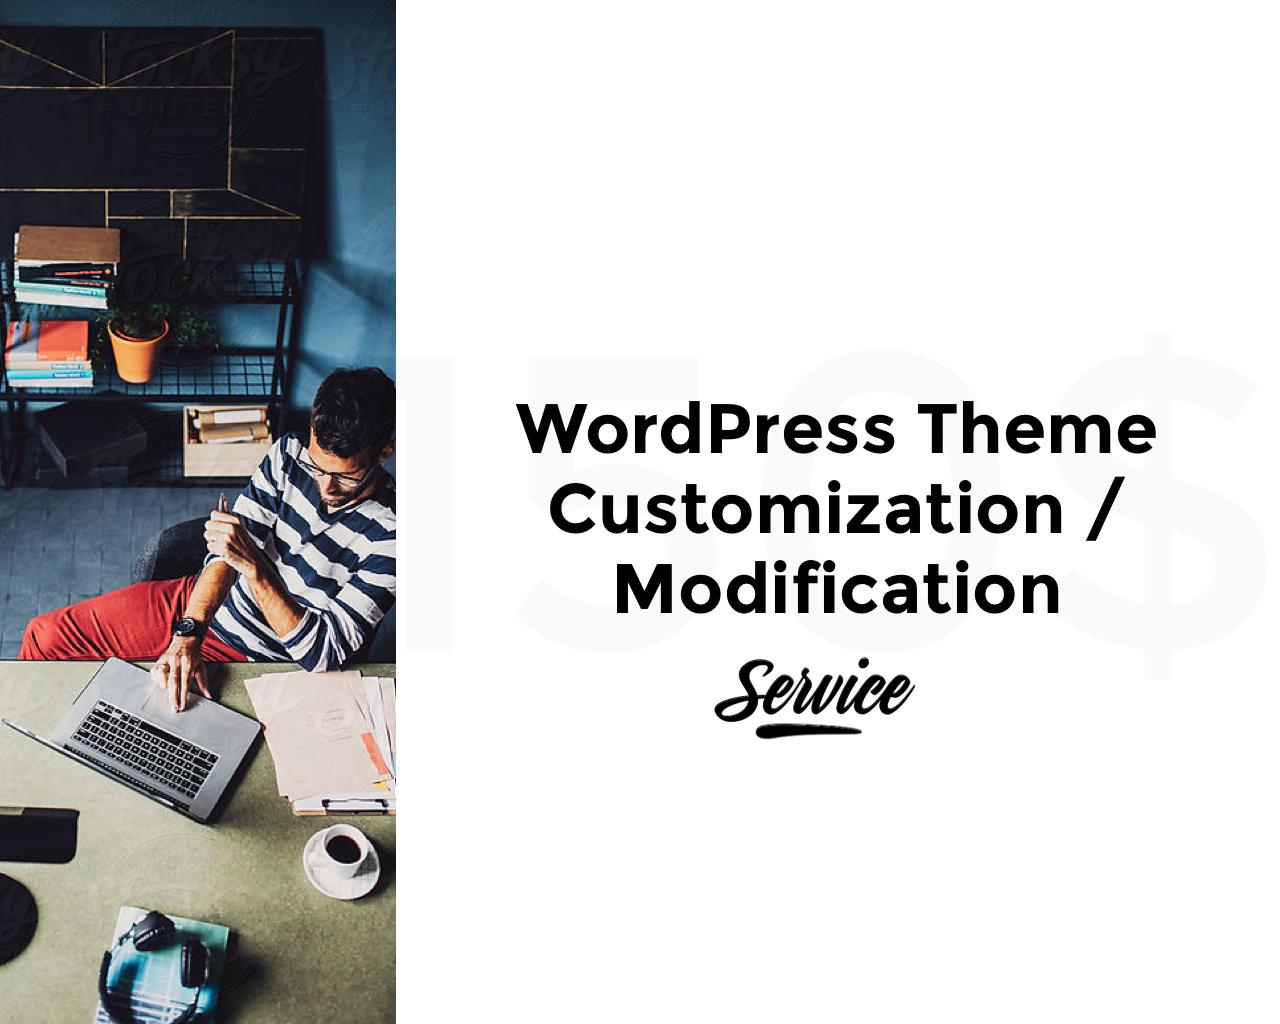 WordPress Theme Customization / Modification by pixelthrone - 103703